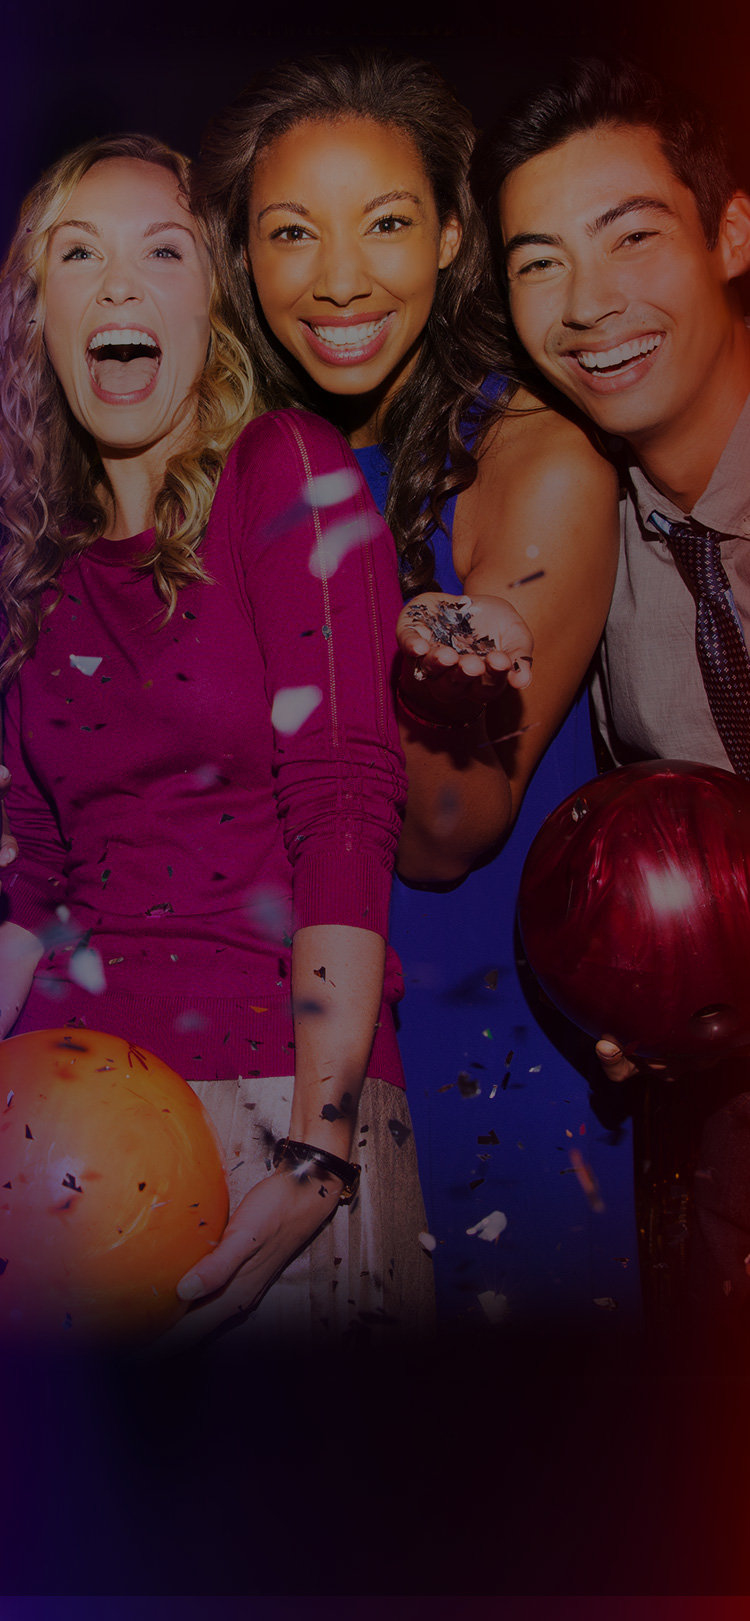 3 friends holding bowling balls and smiling with confetti raining down